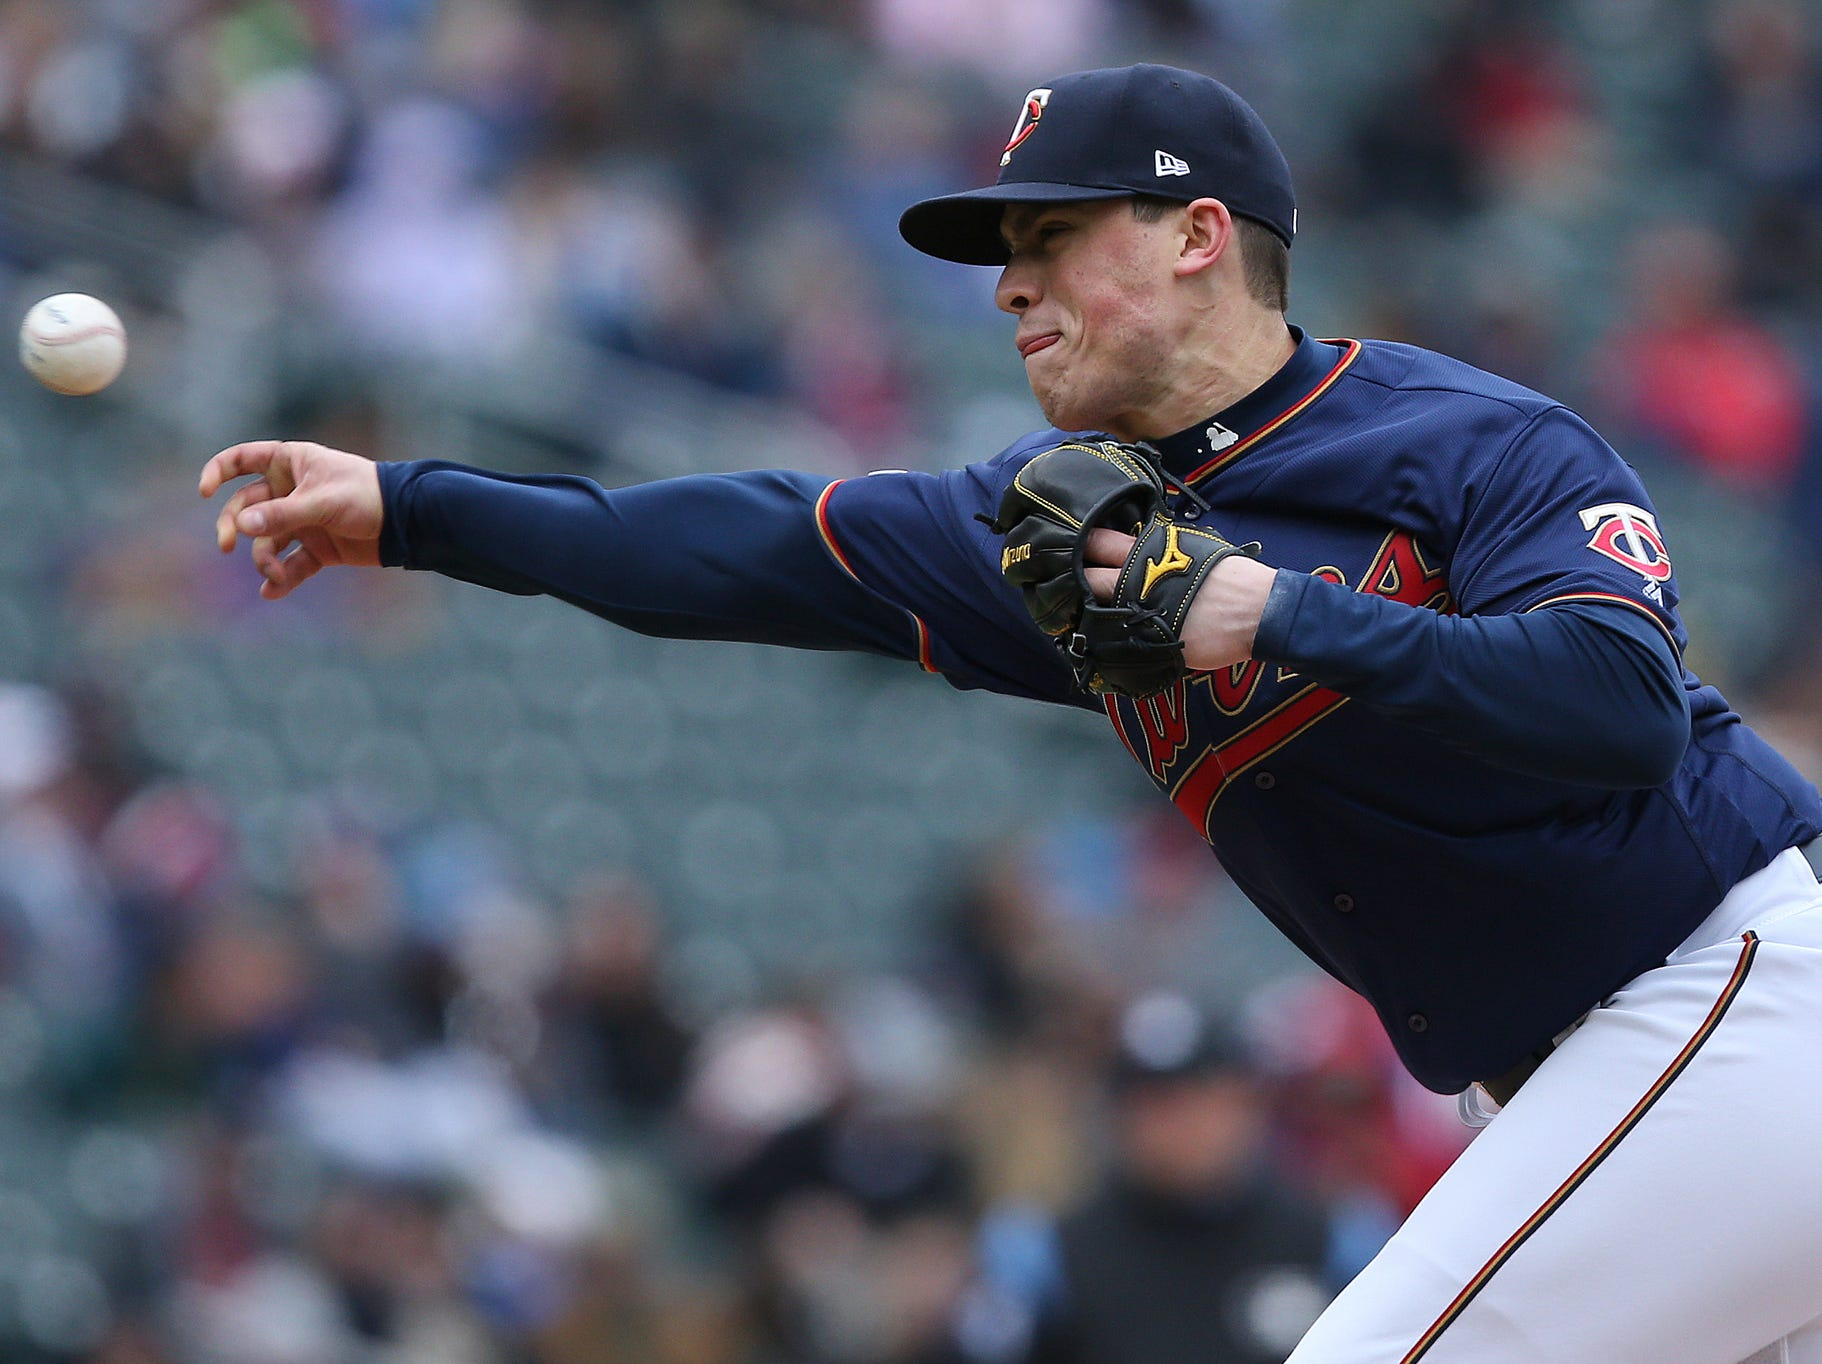 Minnesota Twins pitcher Trevor Hildenberger throws in the seventh inning. The Twins won 4-3.